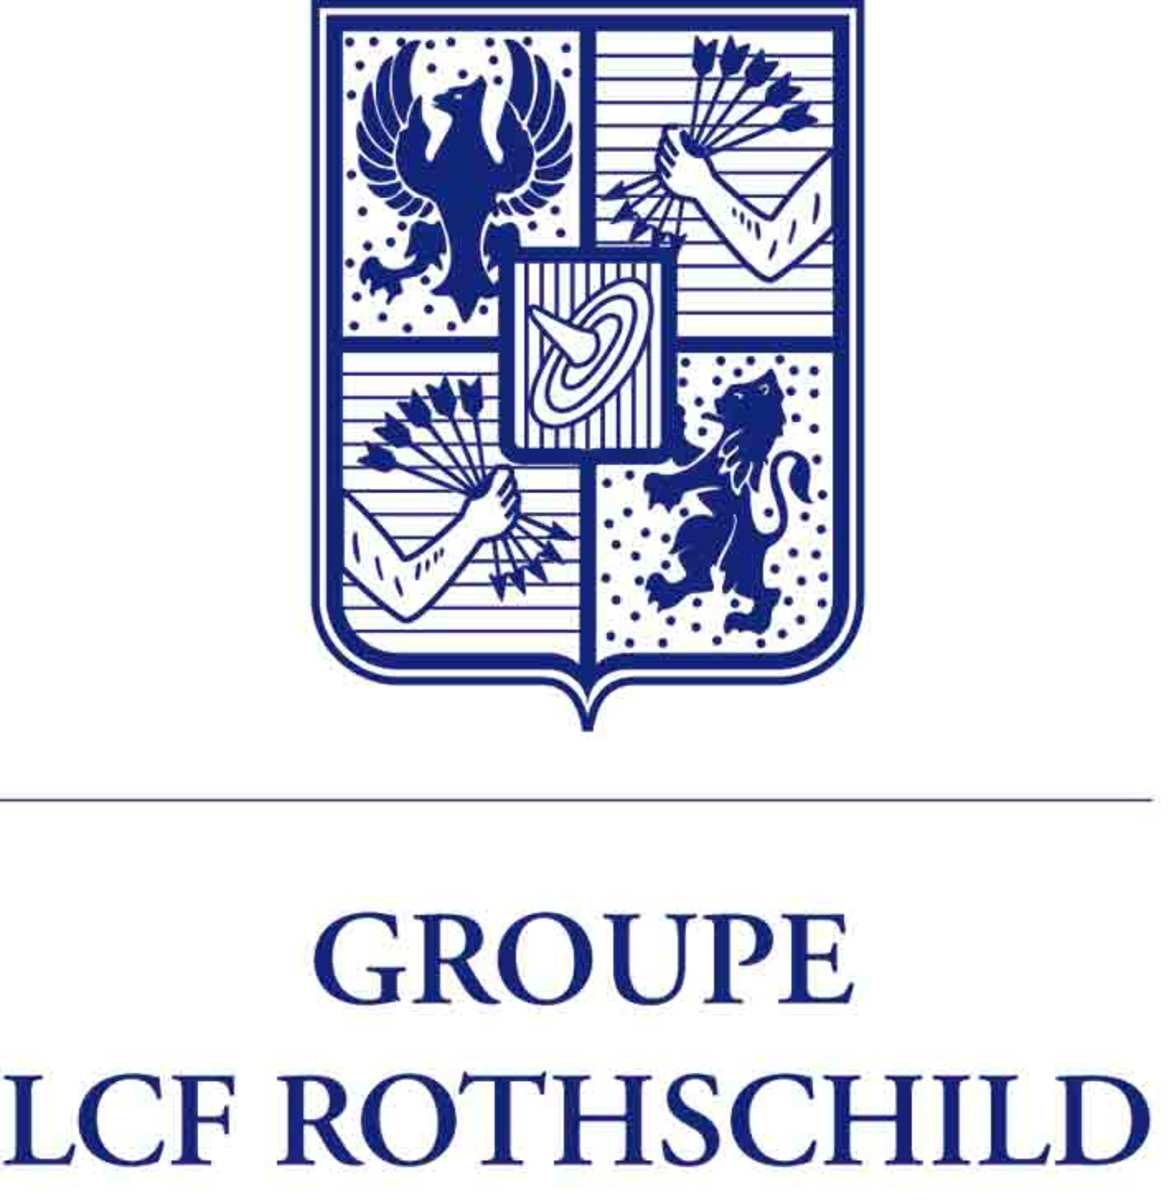 who-is-the-rothschild-family